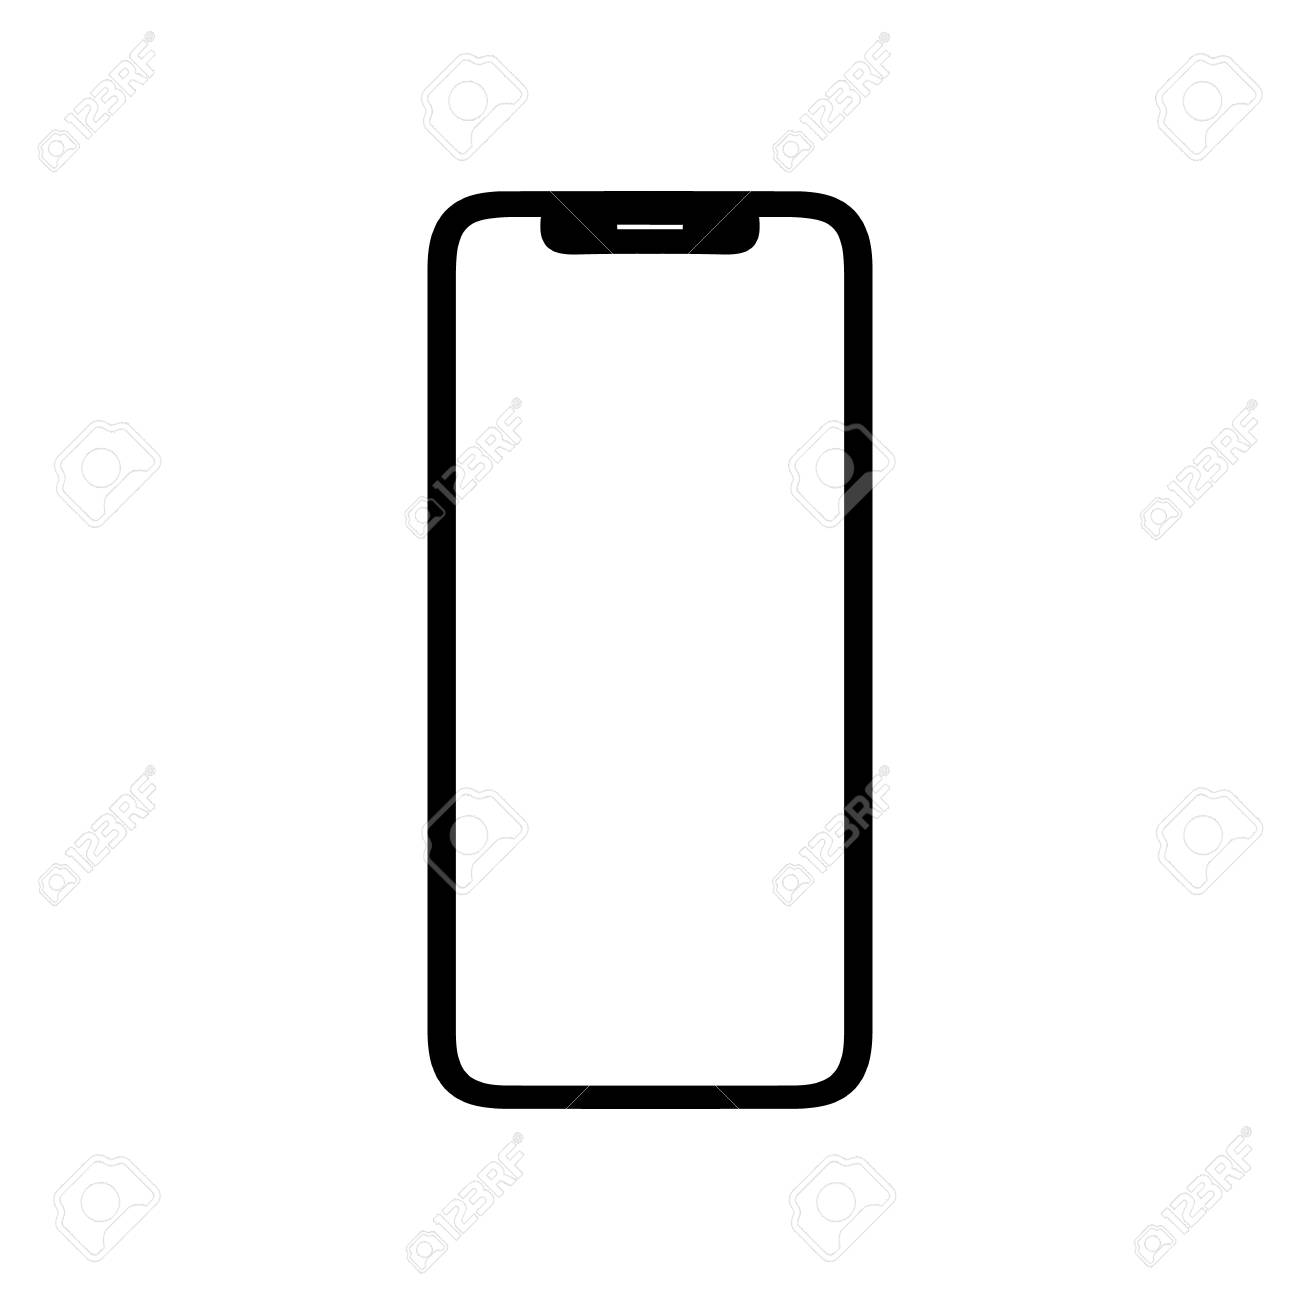 Black phone vector icon smartphone on white background